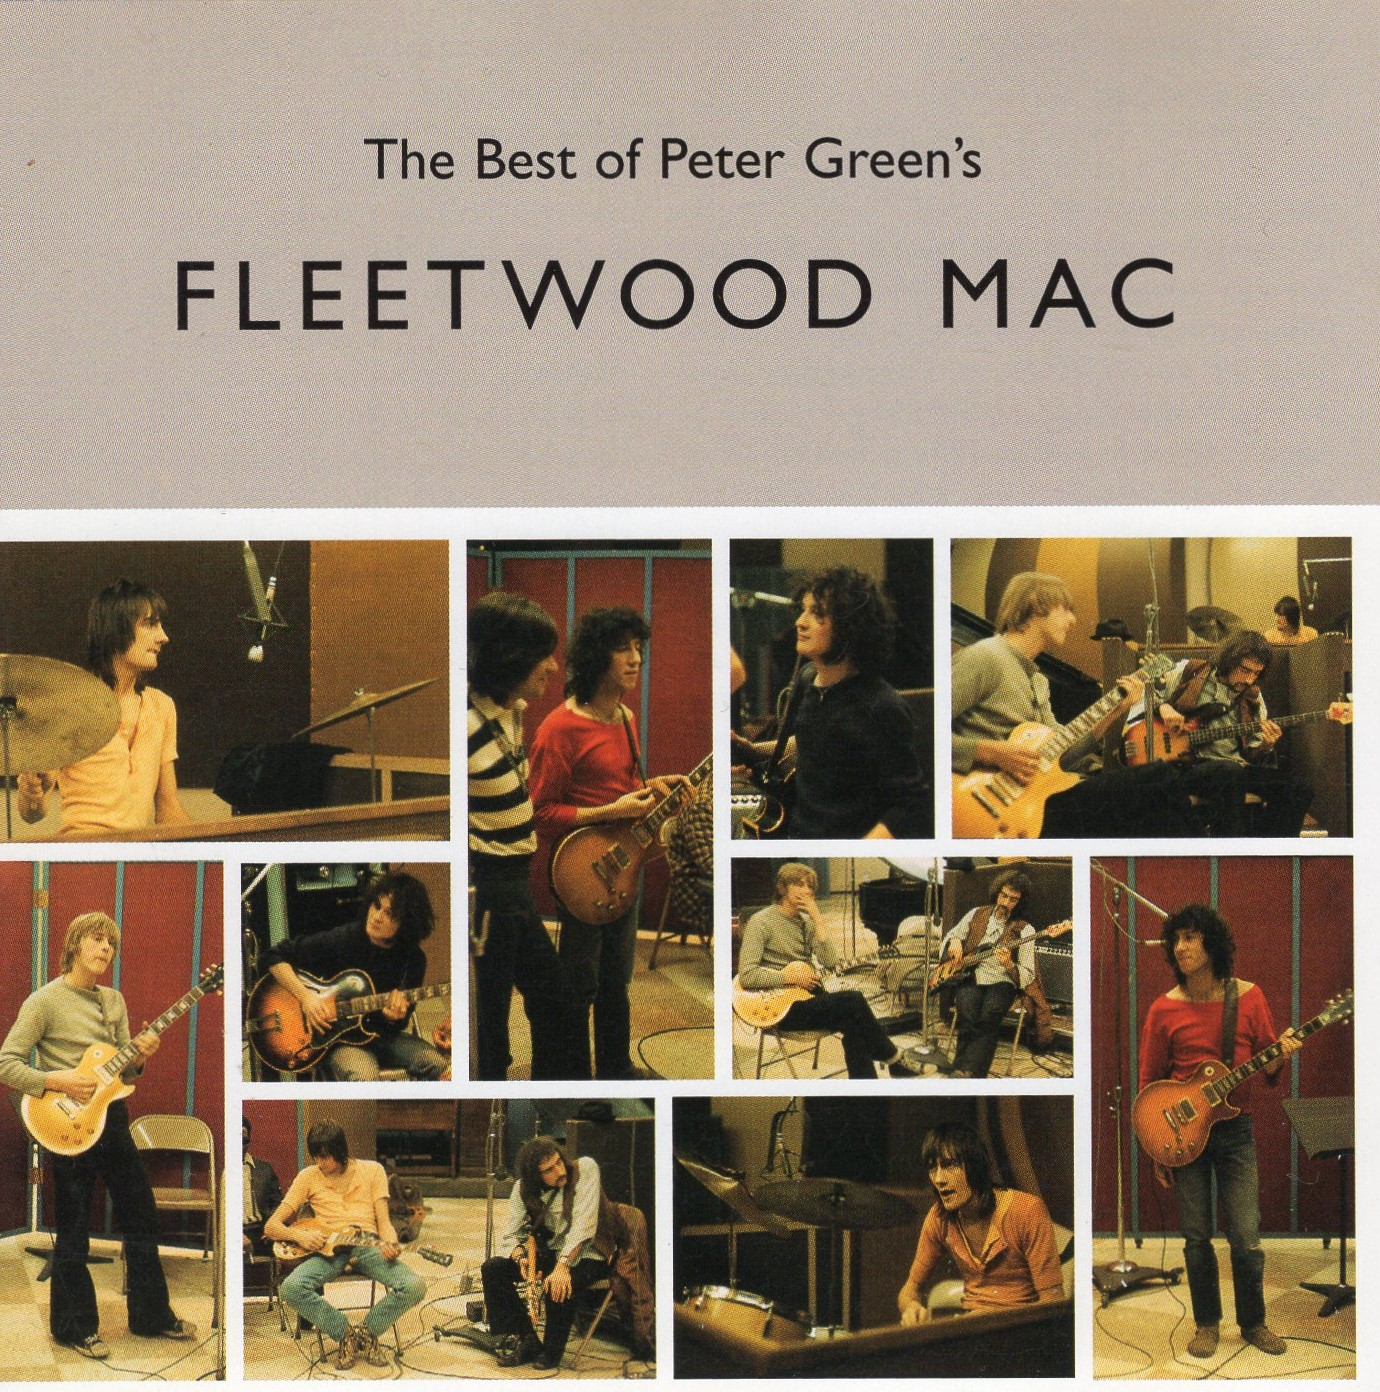 """The Best of Peter Green's Fleetwood Mac"" Fleetwood Mac"